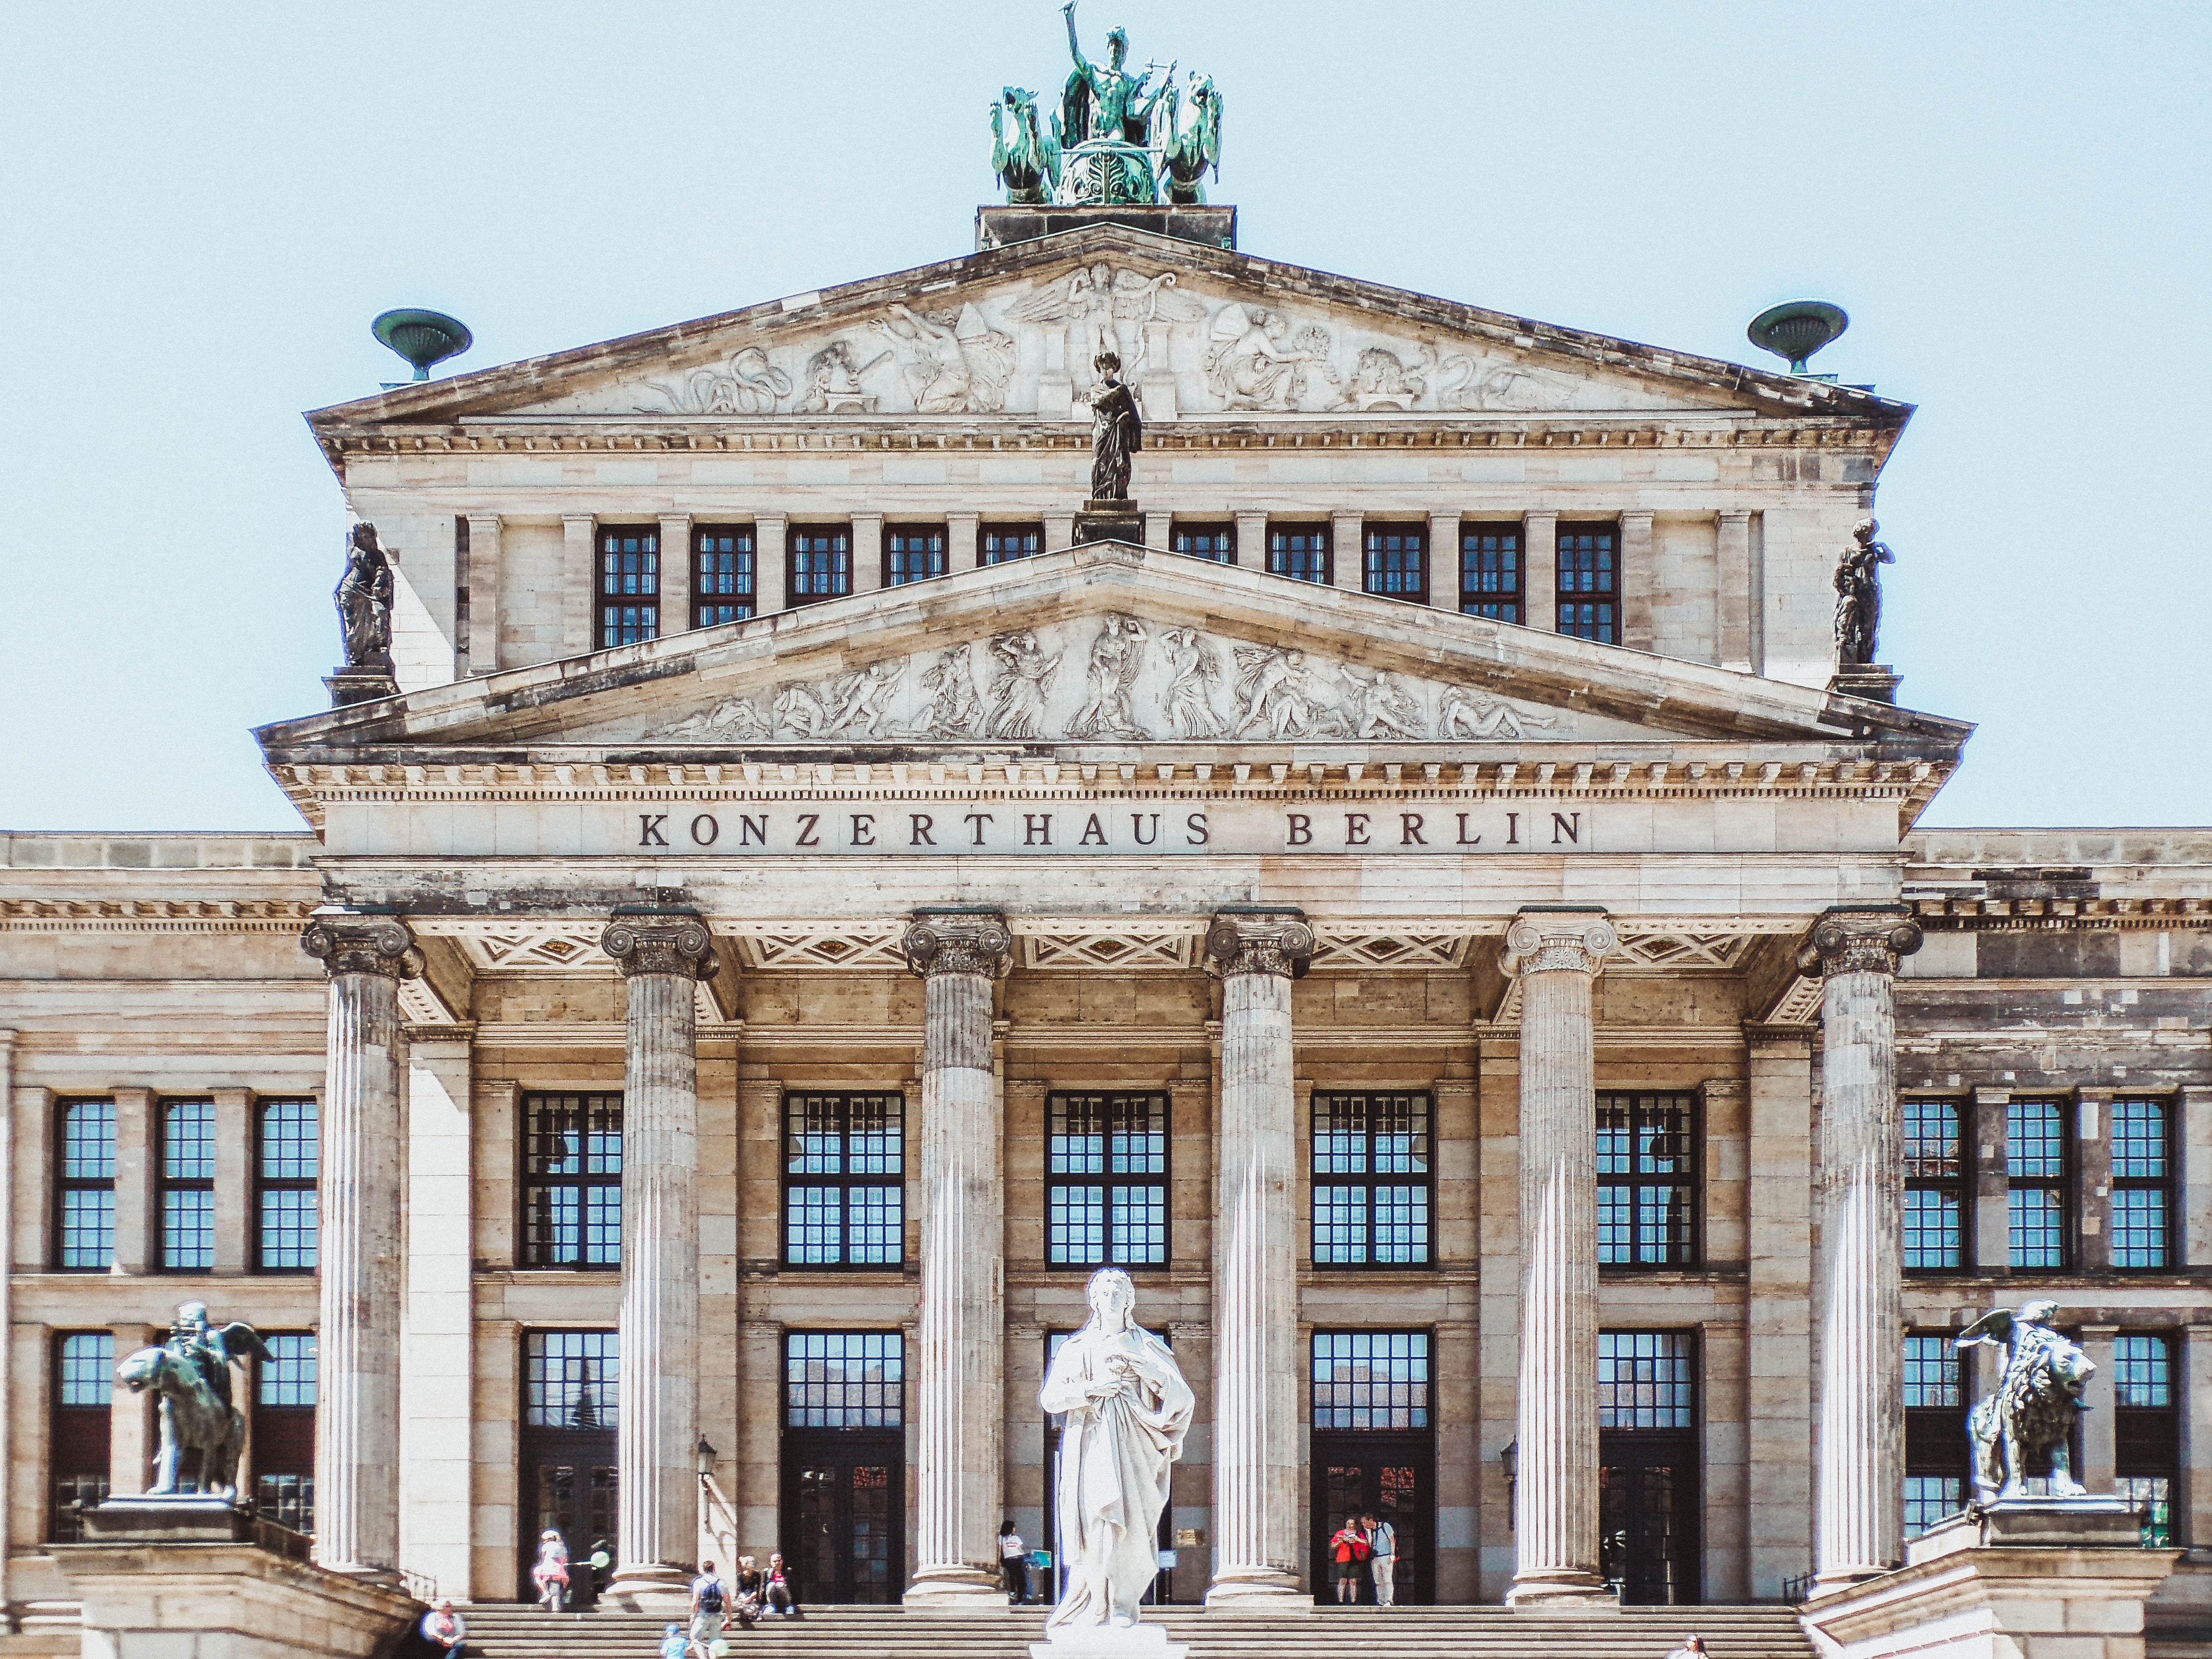 Live as an expat and teach English to students in the beautiful city of Berlin, Germany